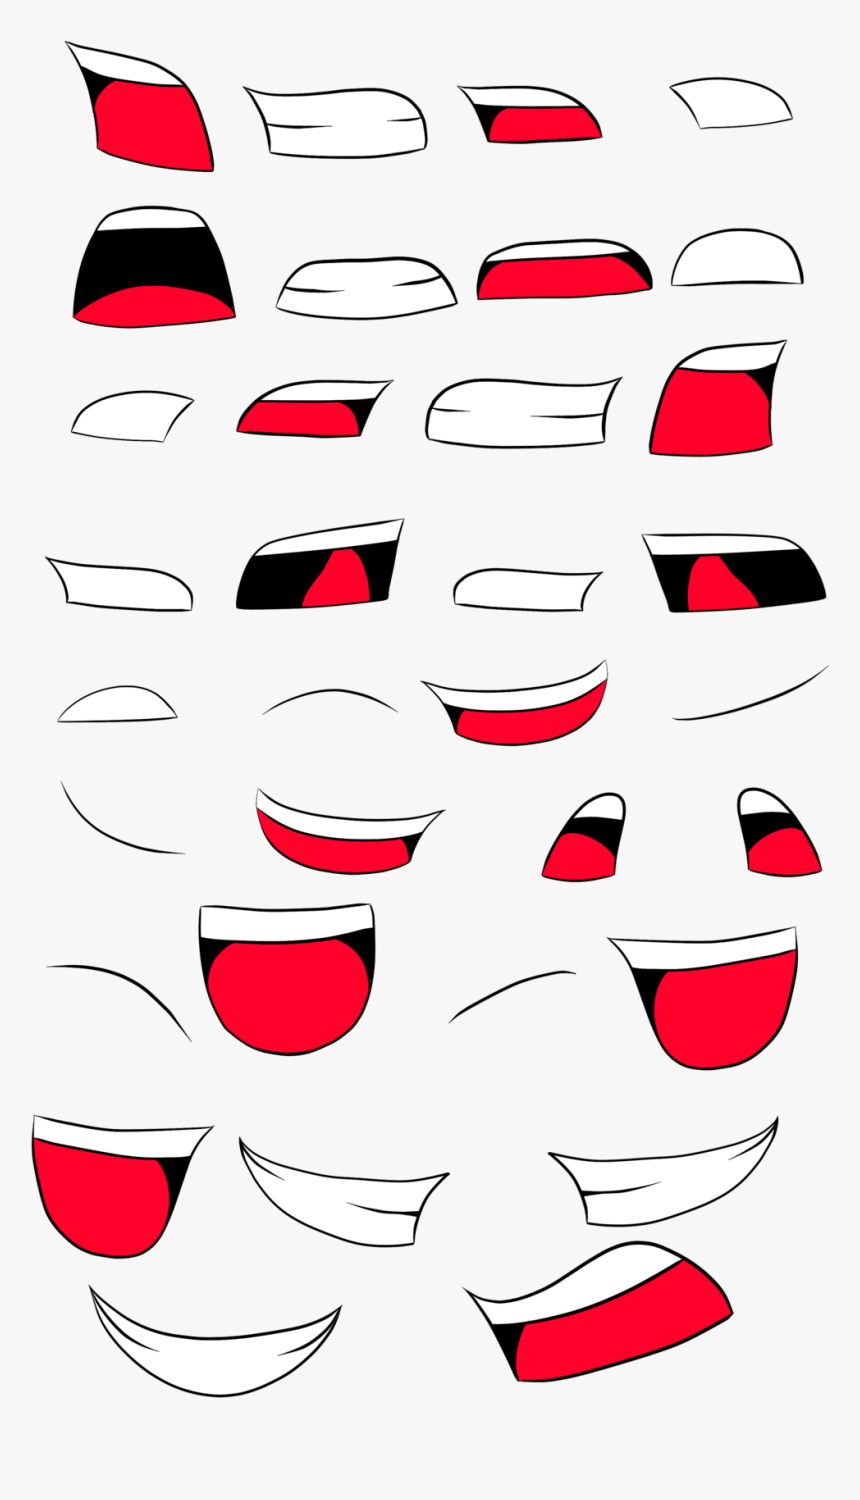 smiling mouth png - Smiling Face With Open Mouth And